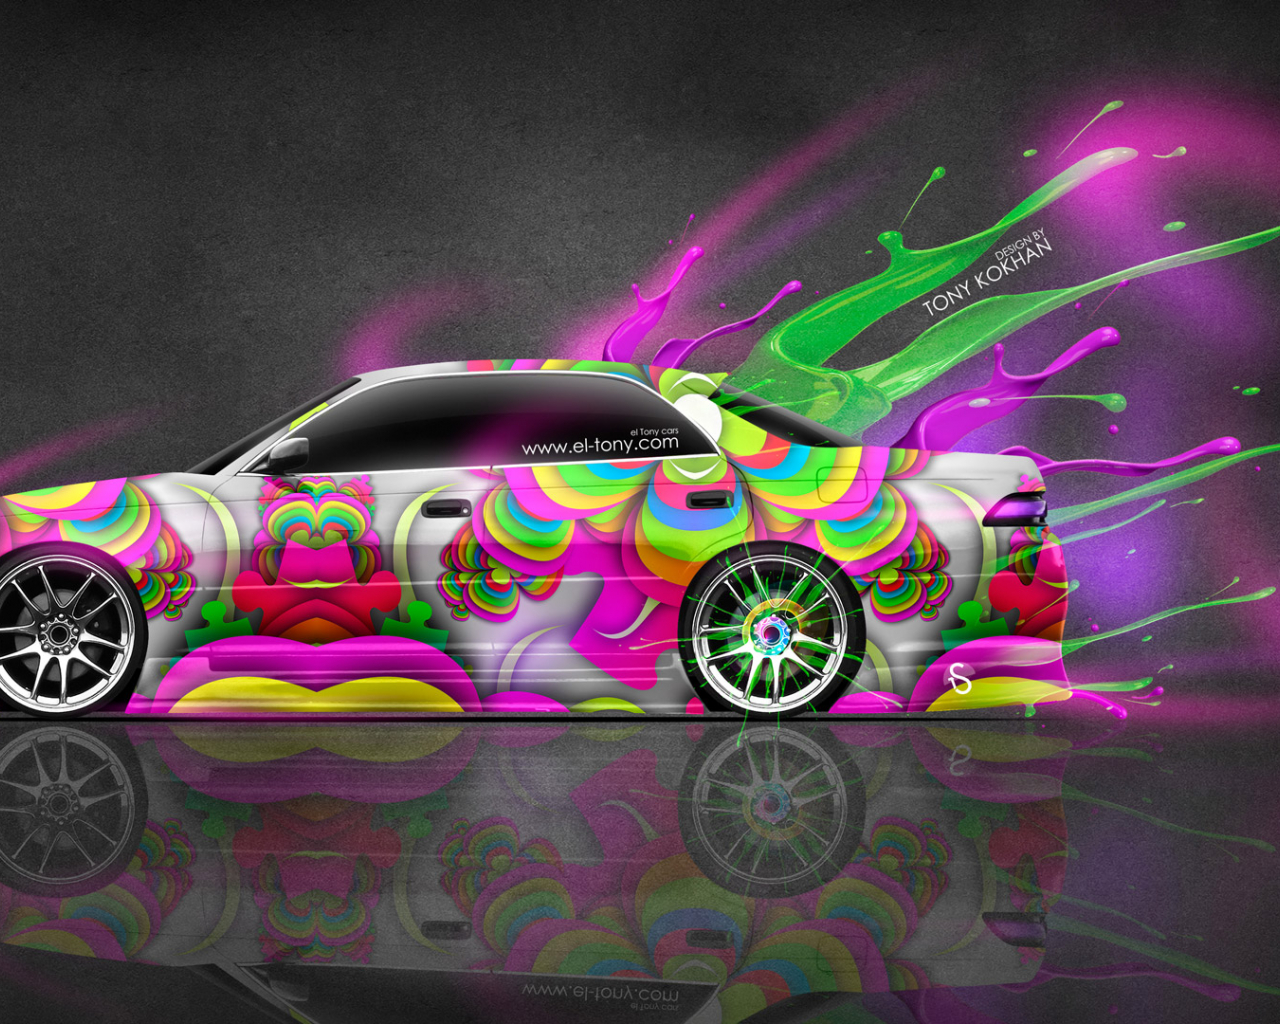 Free Download Mark 2 Jzx90 Jdm Side Drift Live Colors Car 2014 Art Hd Wallpapers 1920x1080 For Your Desktop Mobile Tablet Explore 50 Jdm Drift Wallpaper Jdm Drift Wallpaper Jdm Wallpapers Drift Wallpapers